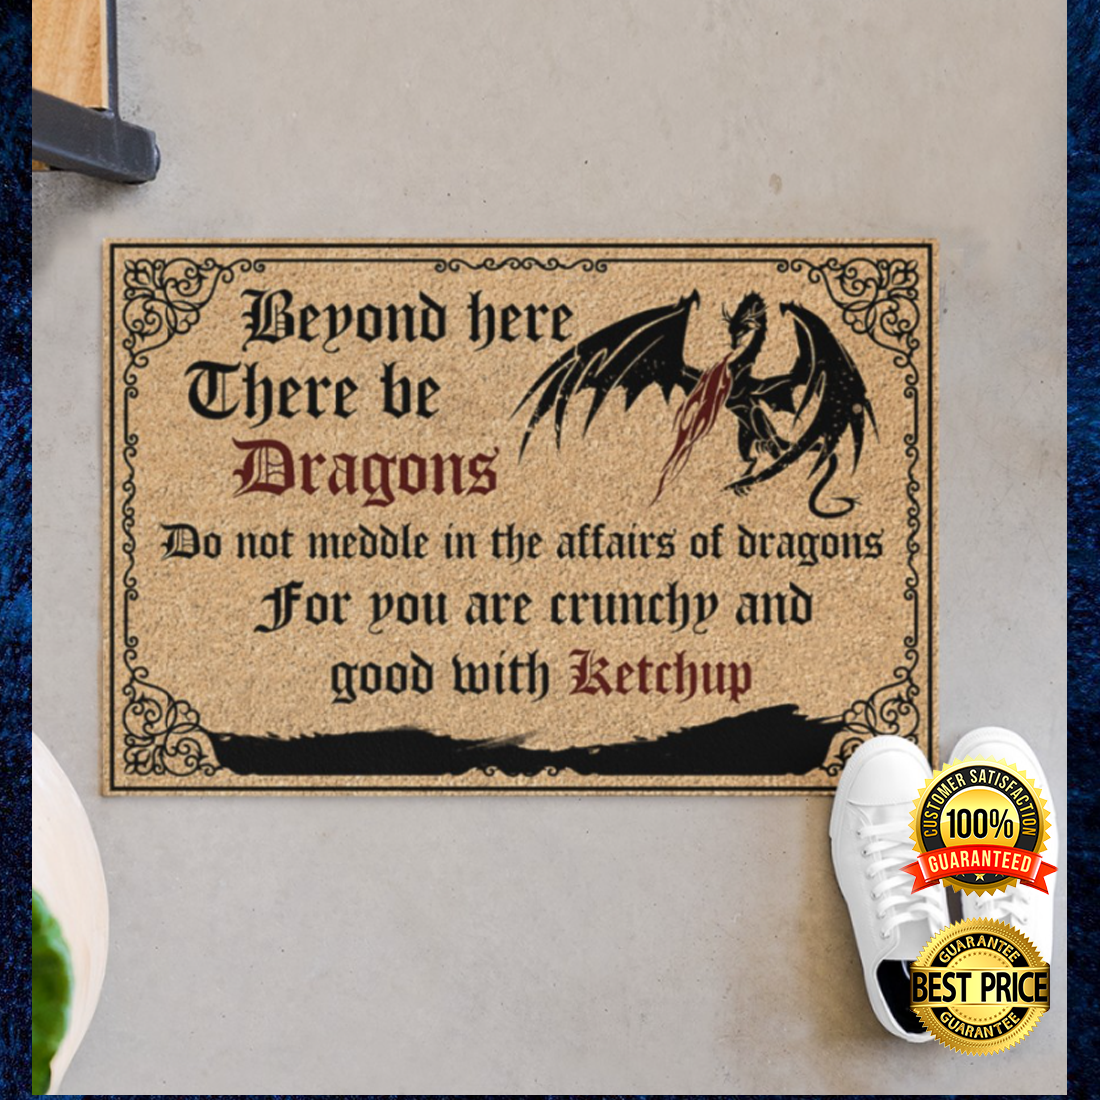 BEYOND HERE THERE BE DRAGONS DOORMAT 5